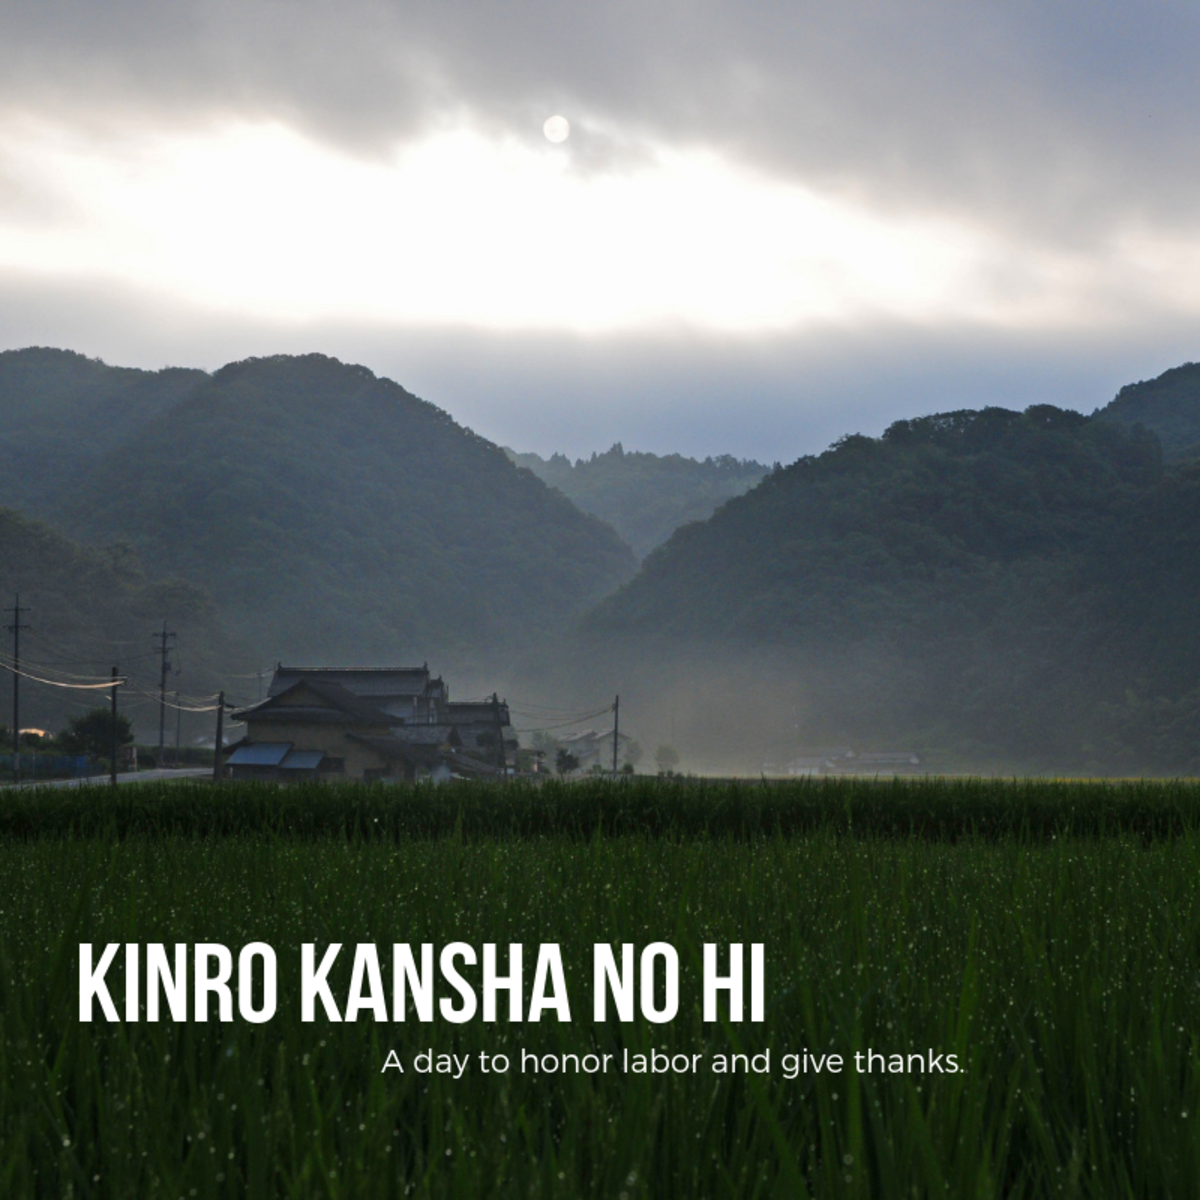 Kinro Kansha No Hi: Is It Labor Day or Thanksgiving?